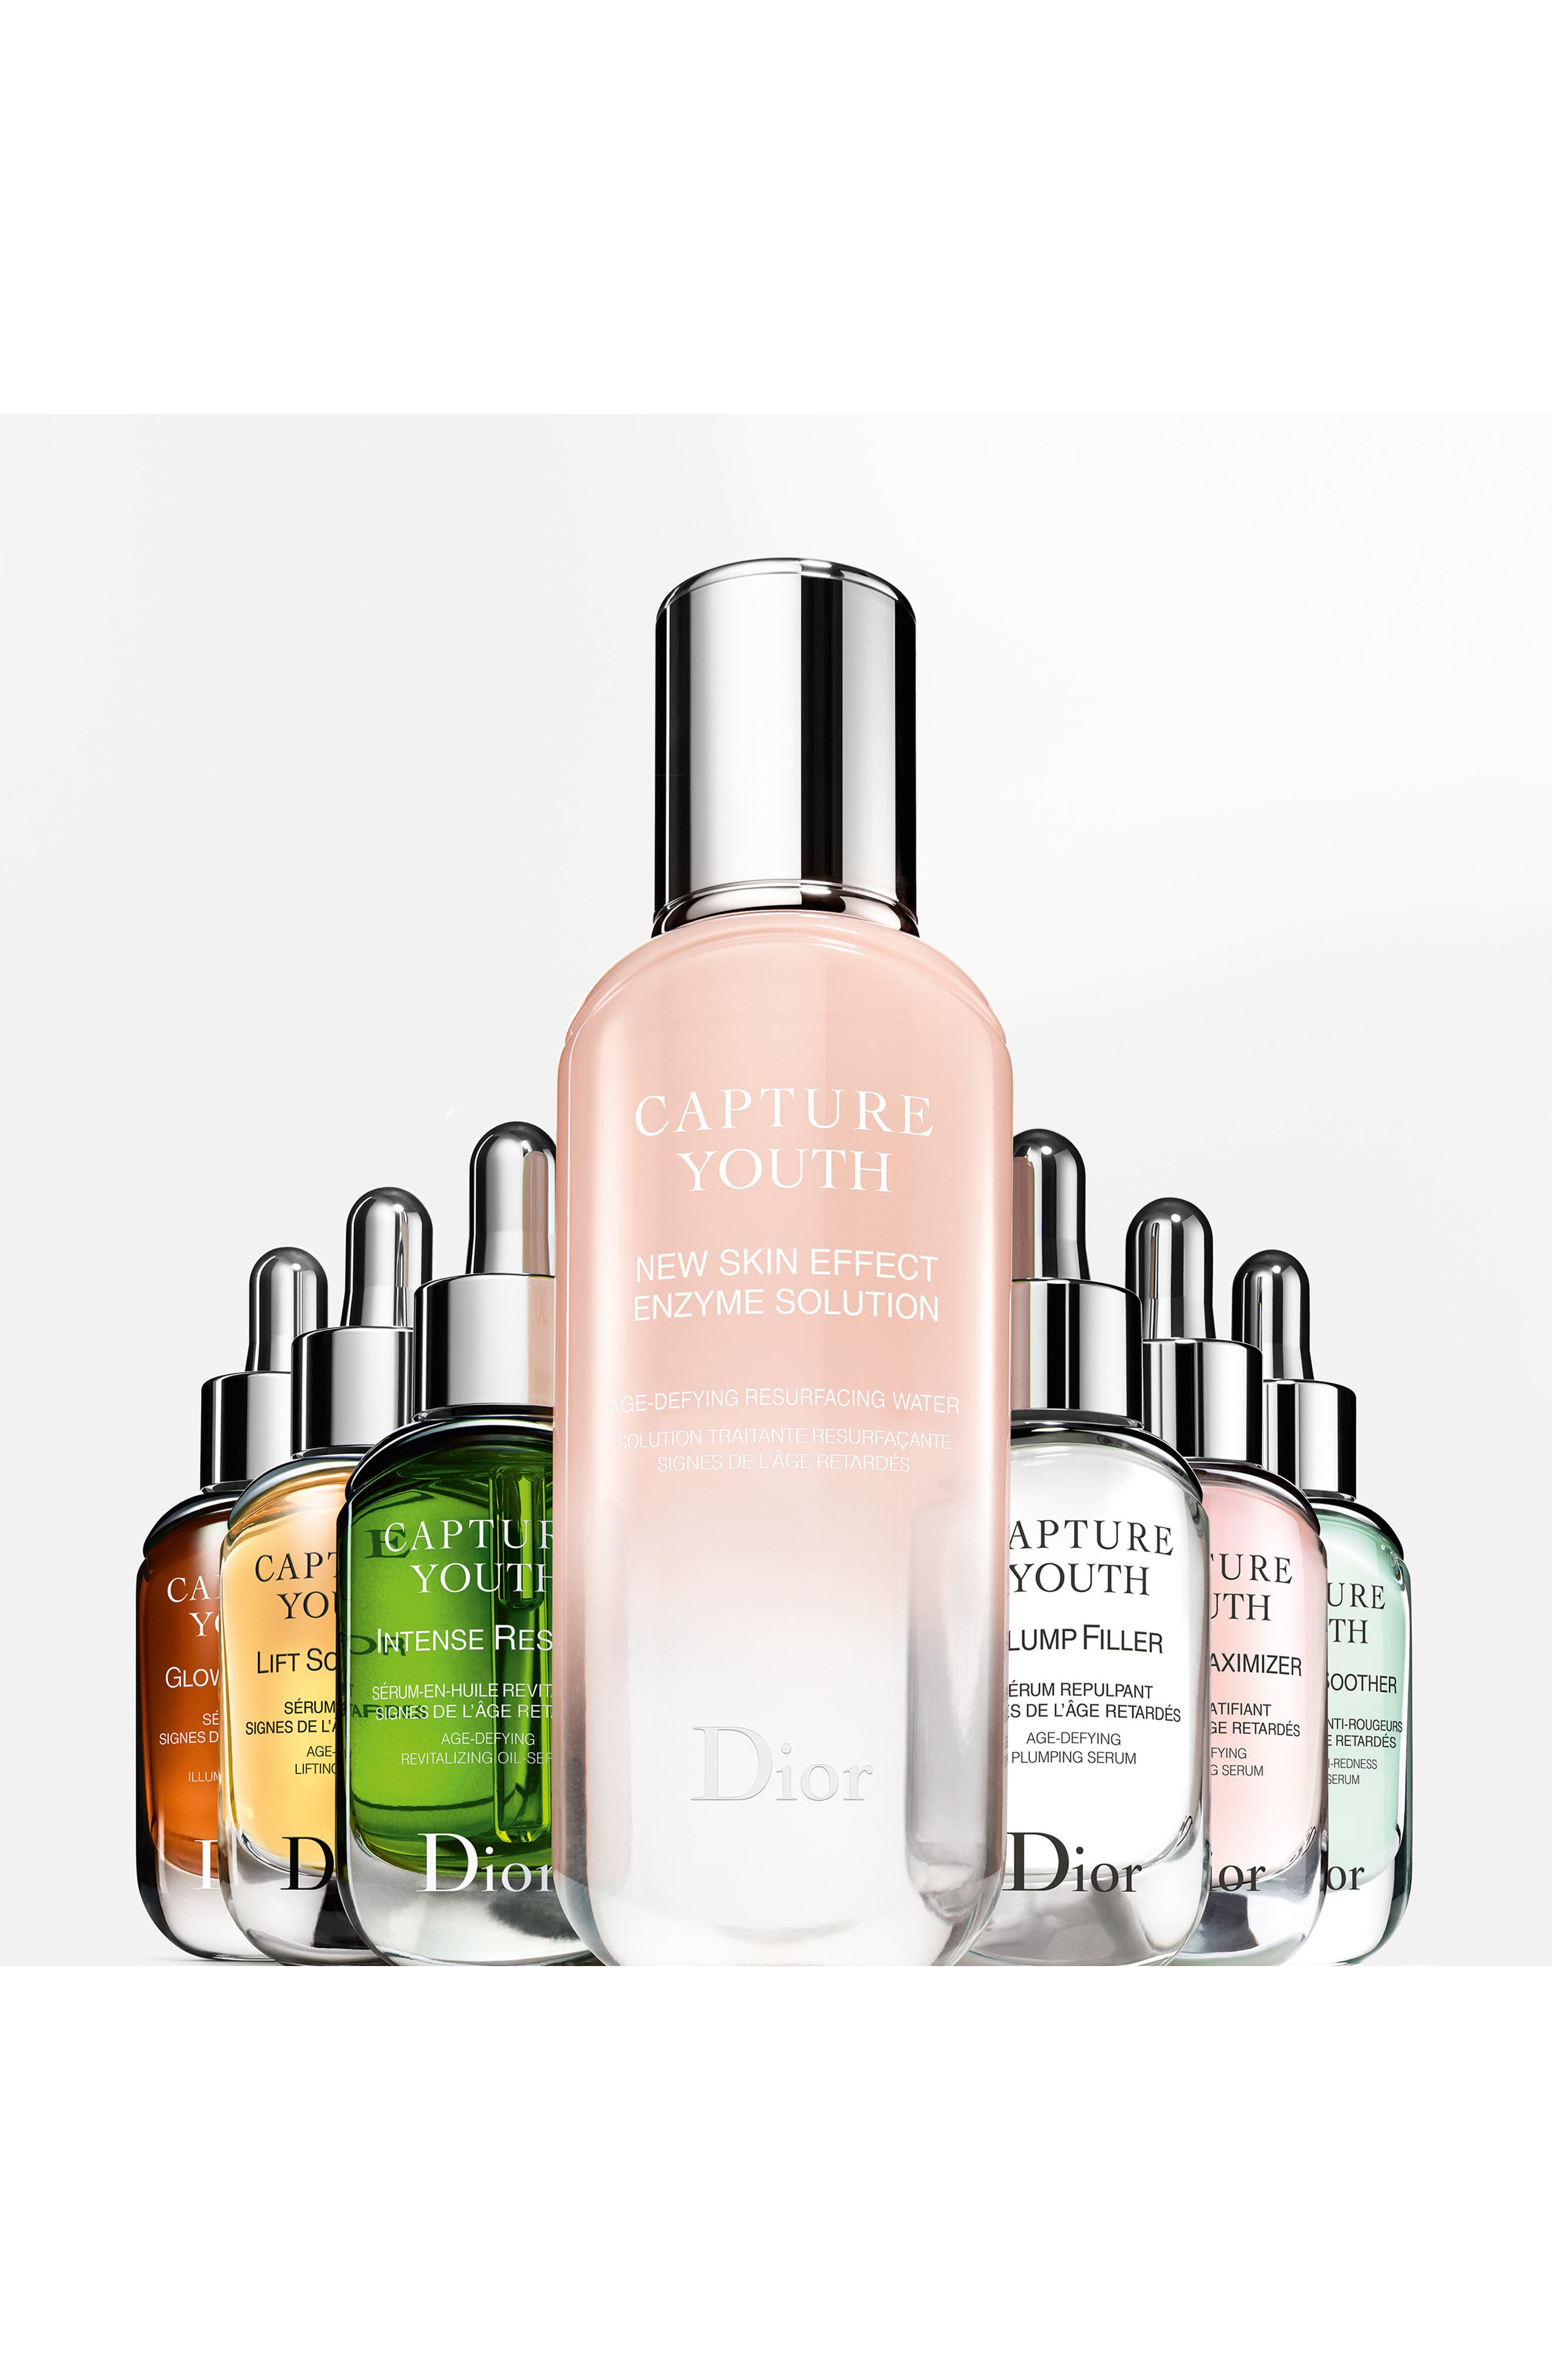 Capture Youth New Skin Effect Enzyme Solution,                             Alternate thumbnail 7, color,                             NO COLOR